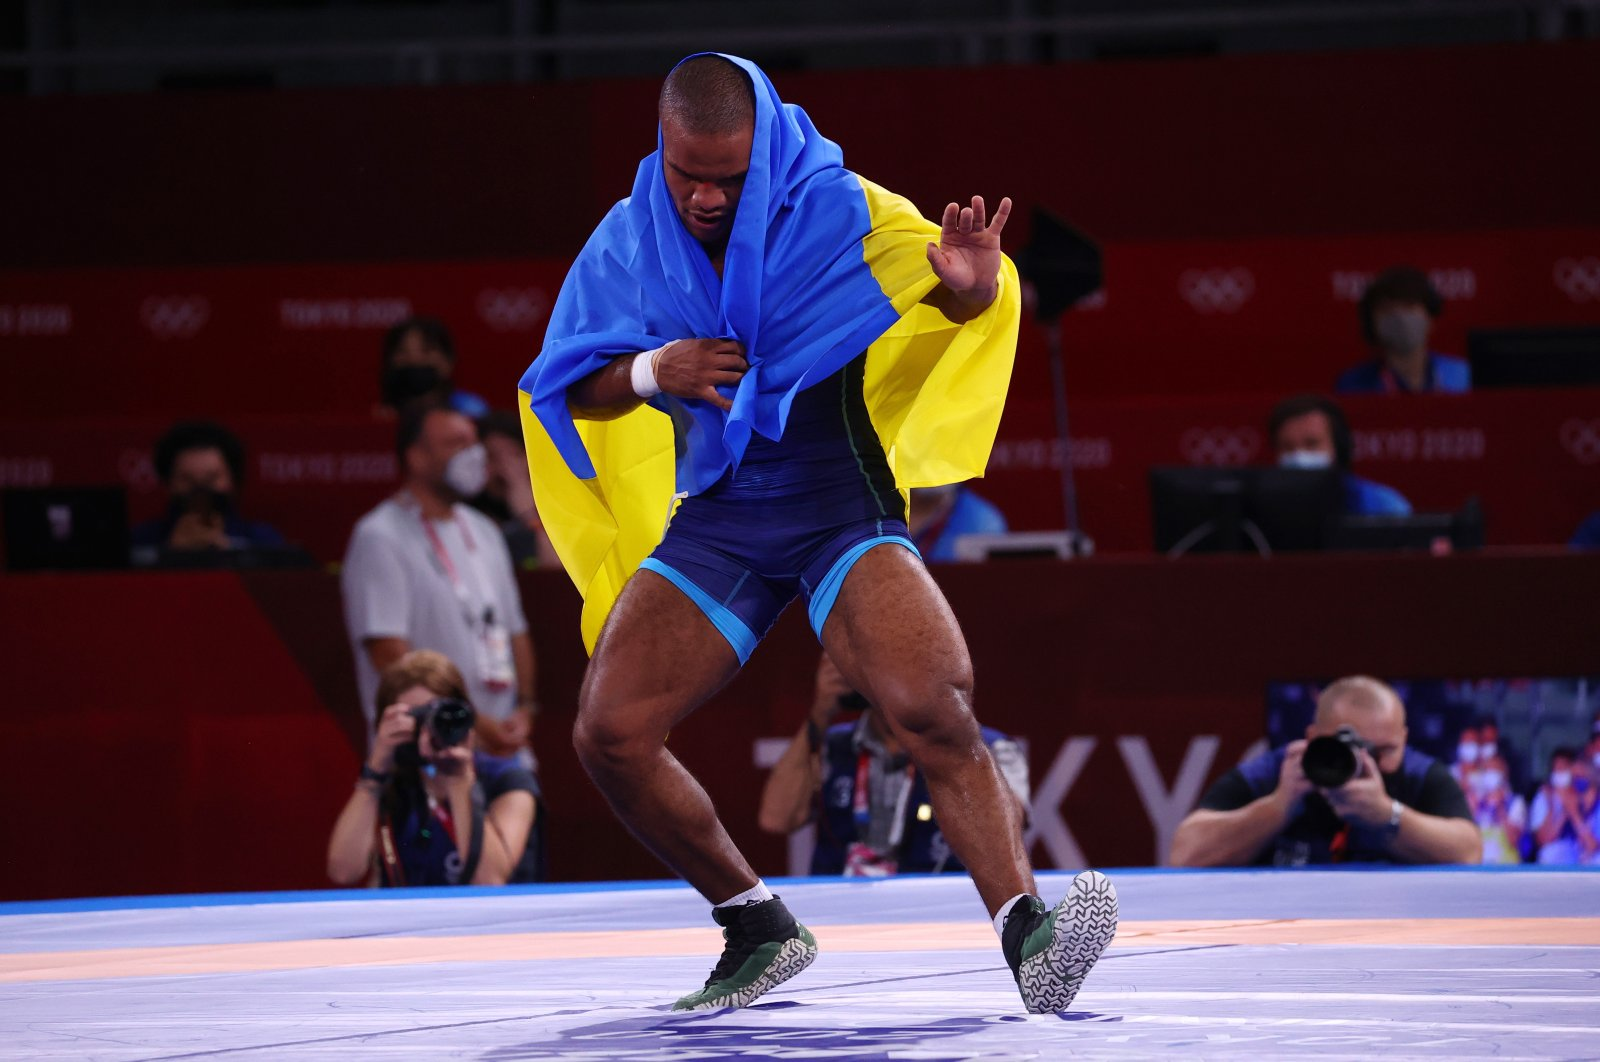 Zhan Beleniuk of Ukraine celebrates after winning gold in men's Greco-Roman 87-kilogram wrestling at the 2020 Summer Olympic Games at the Makuhari Messe event hall in Tokyo, Japan, Aug. 4, 2021. (Reuters Photo)